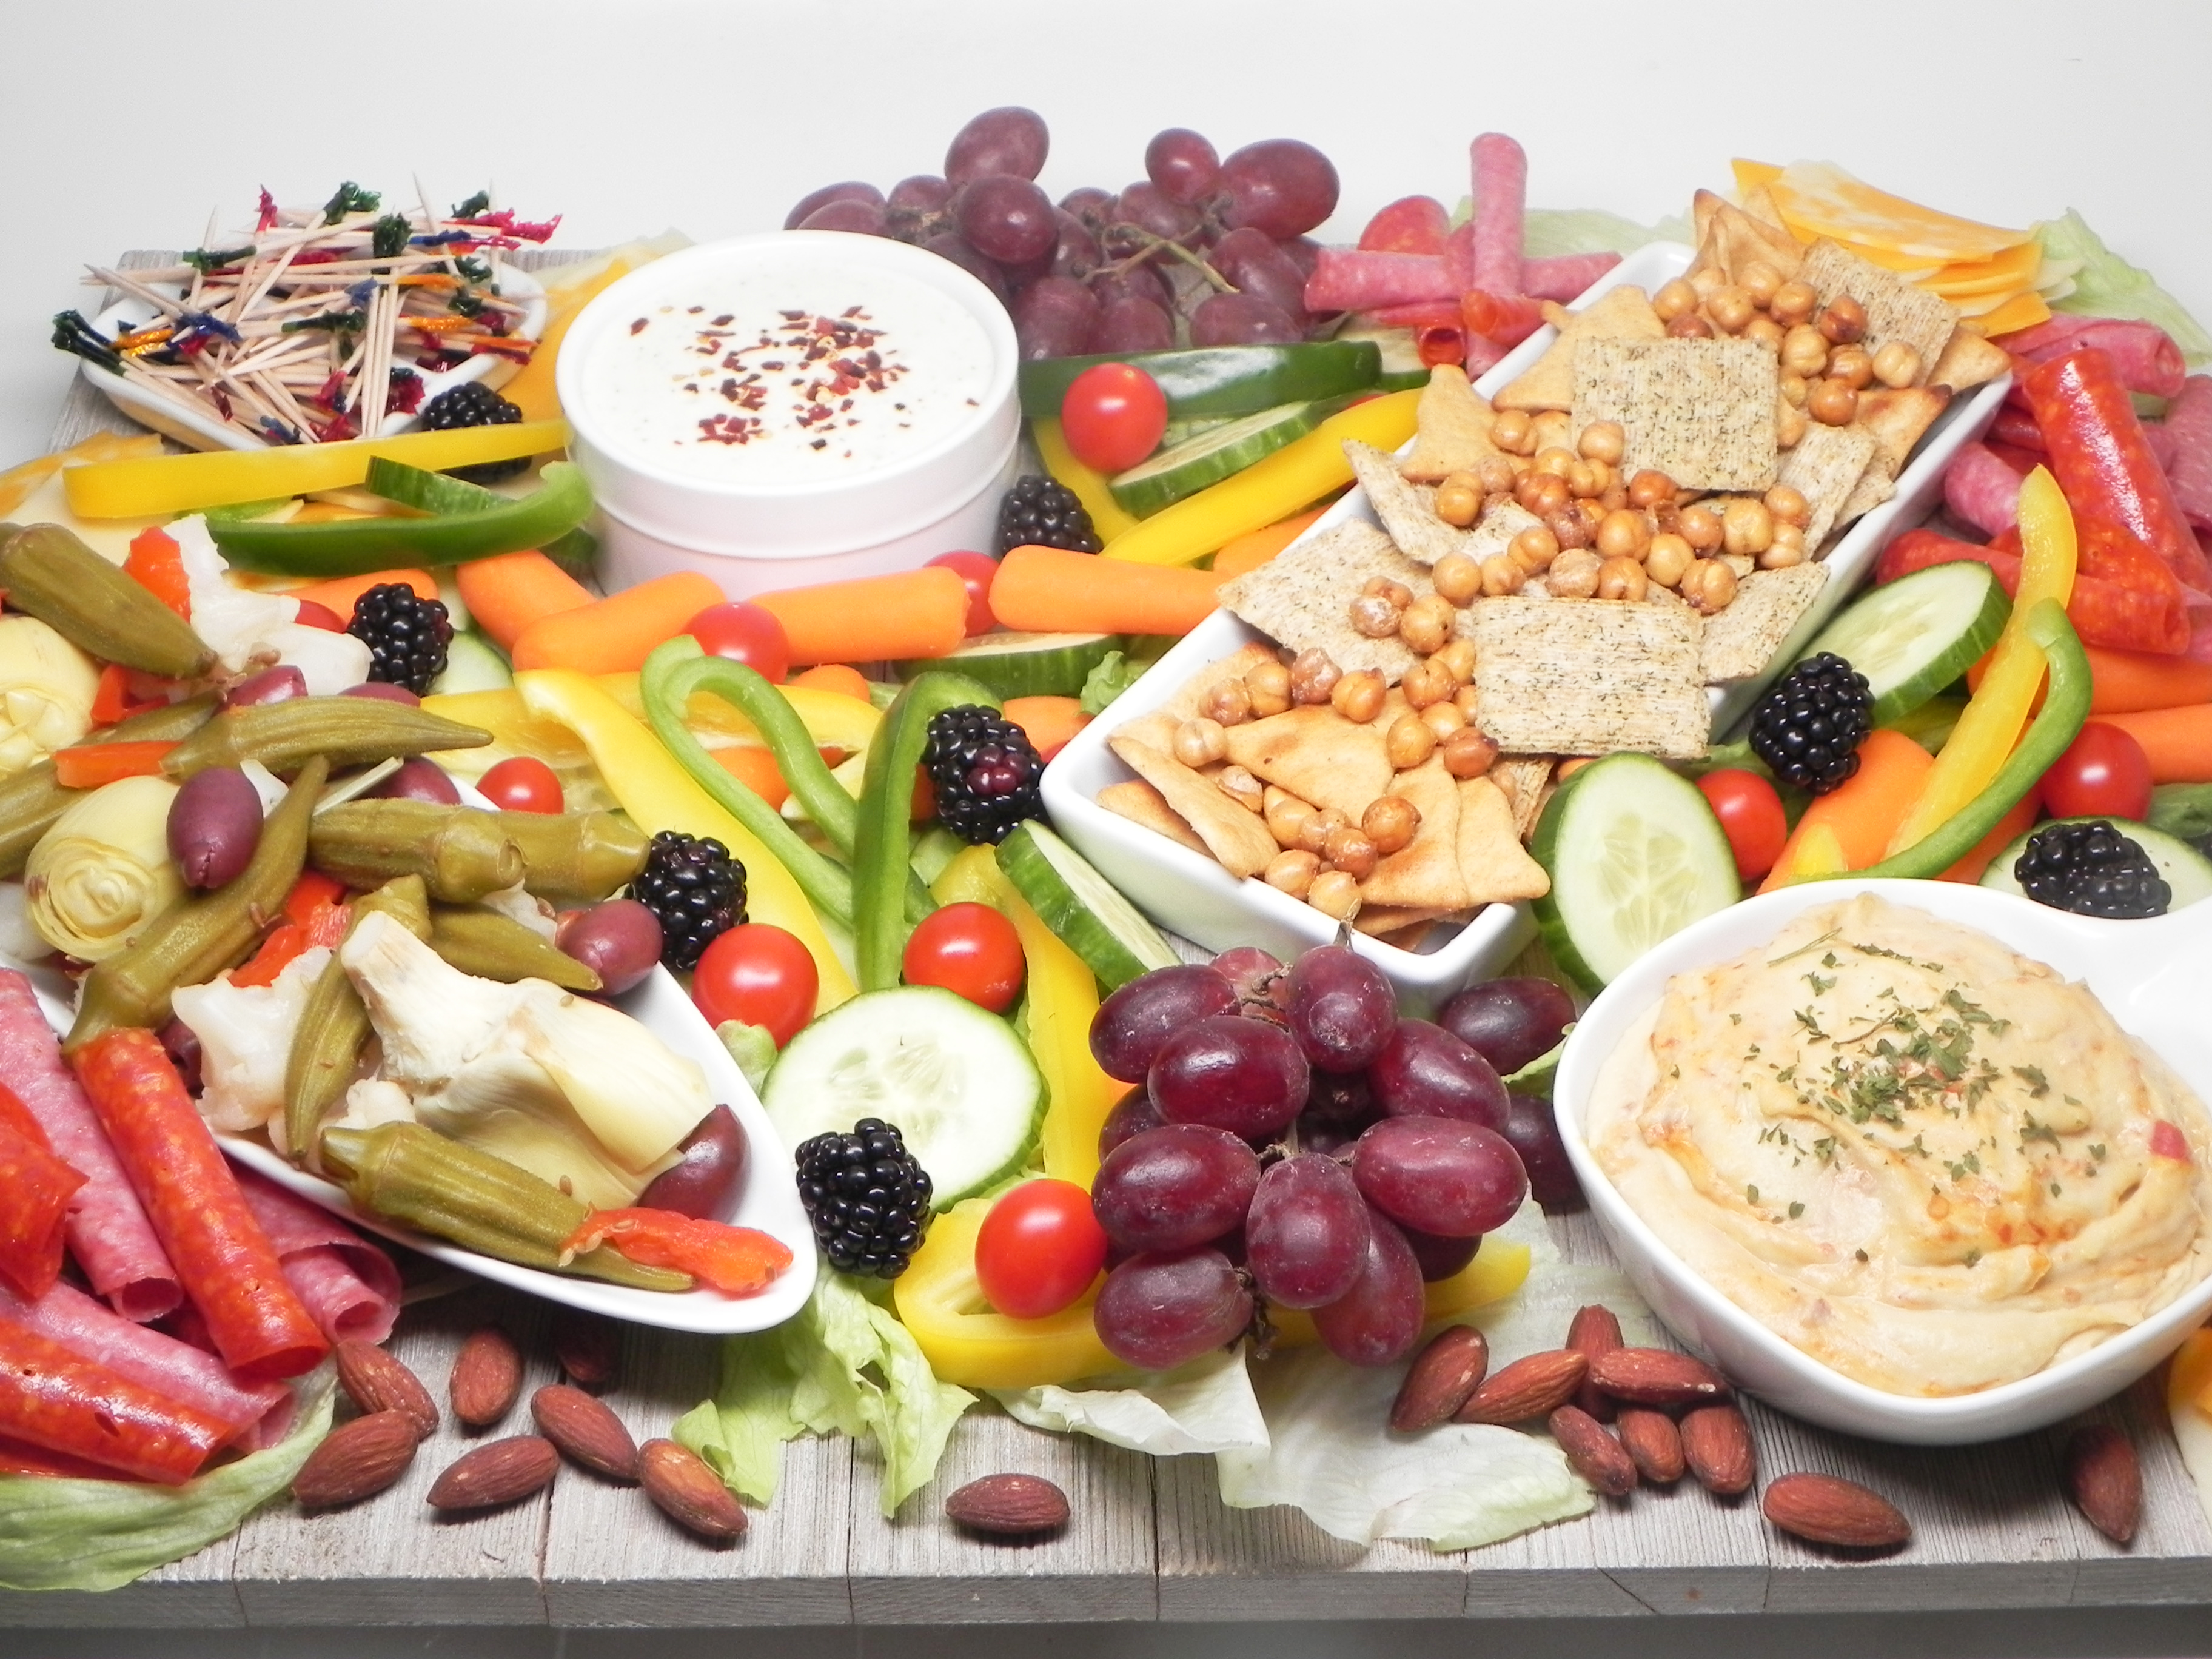 The only rule for making this Greek-inspired snack board? There are no rules. Pair Soup Loving Nicole's yogurt-feta dip with your favorite fruits and veggies to customize your own photo-worthy spread.